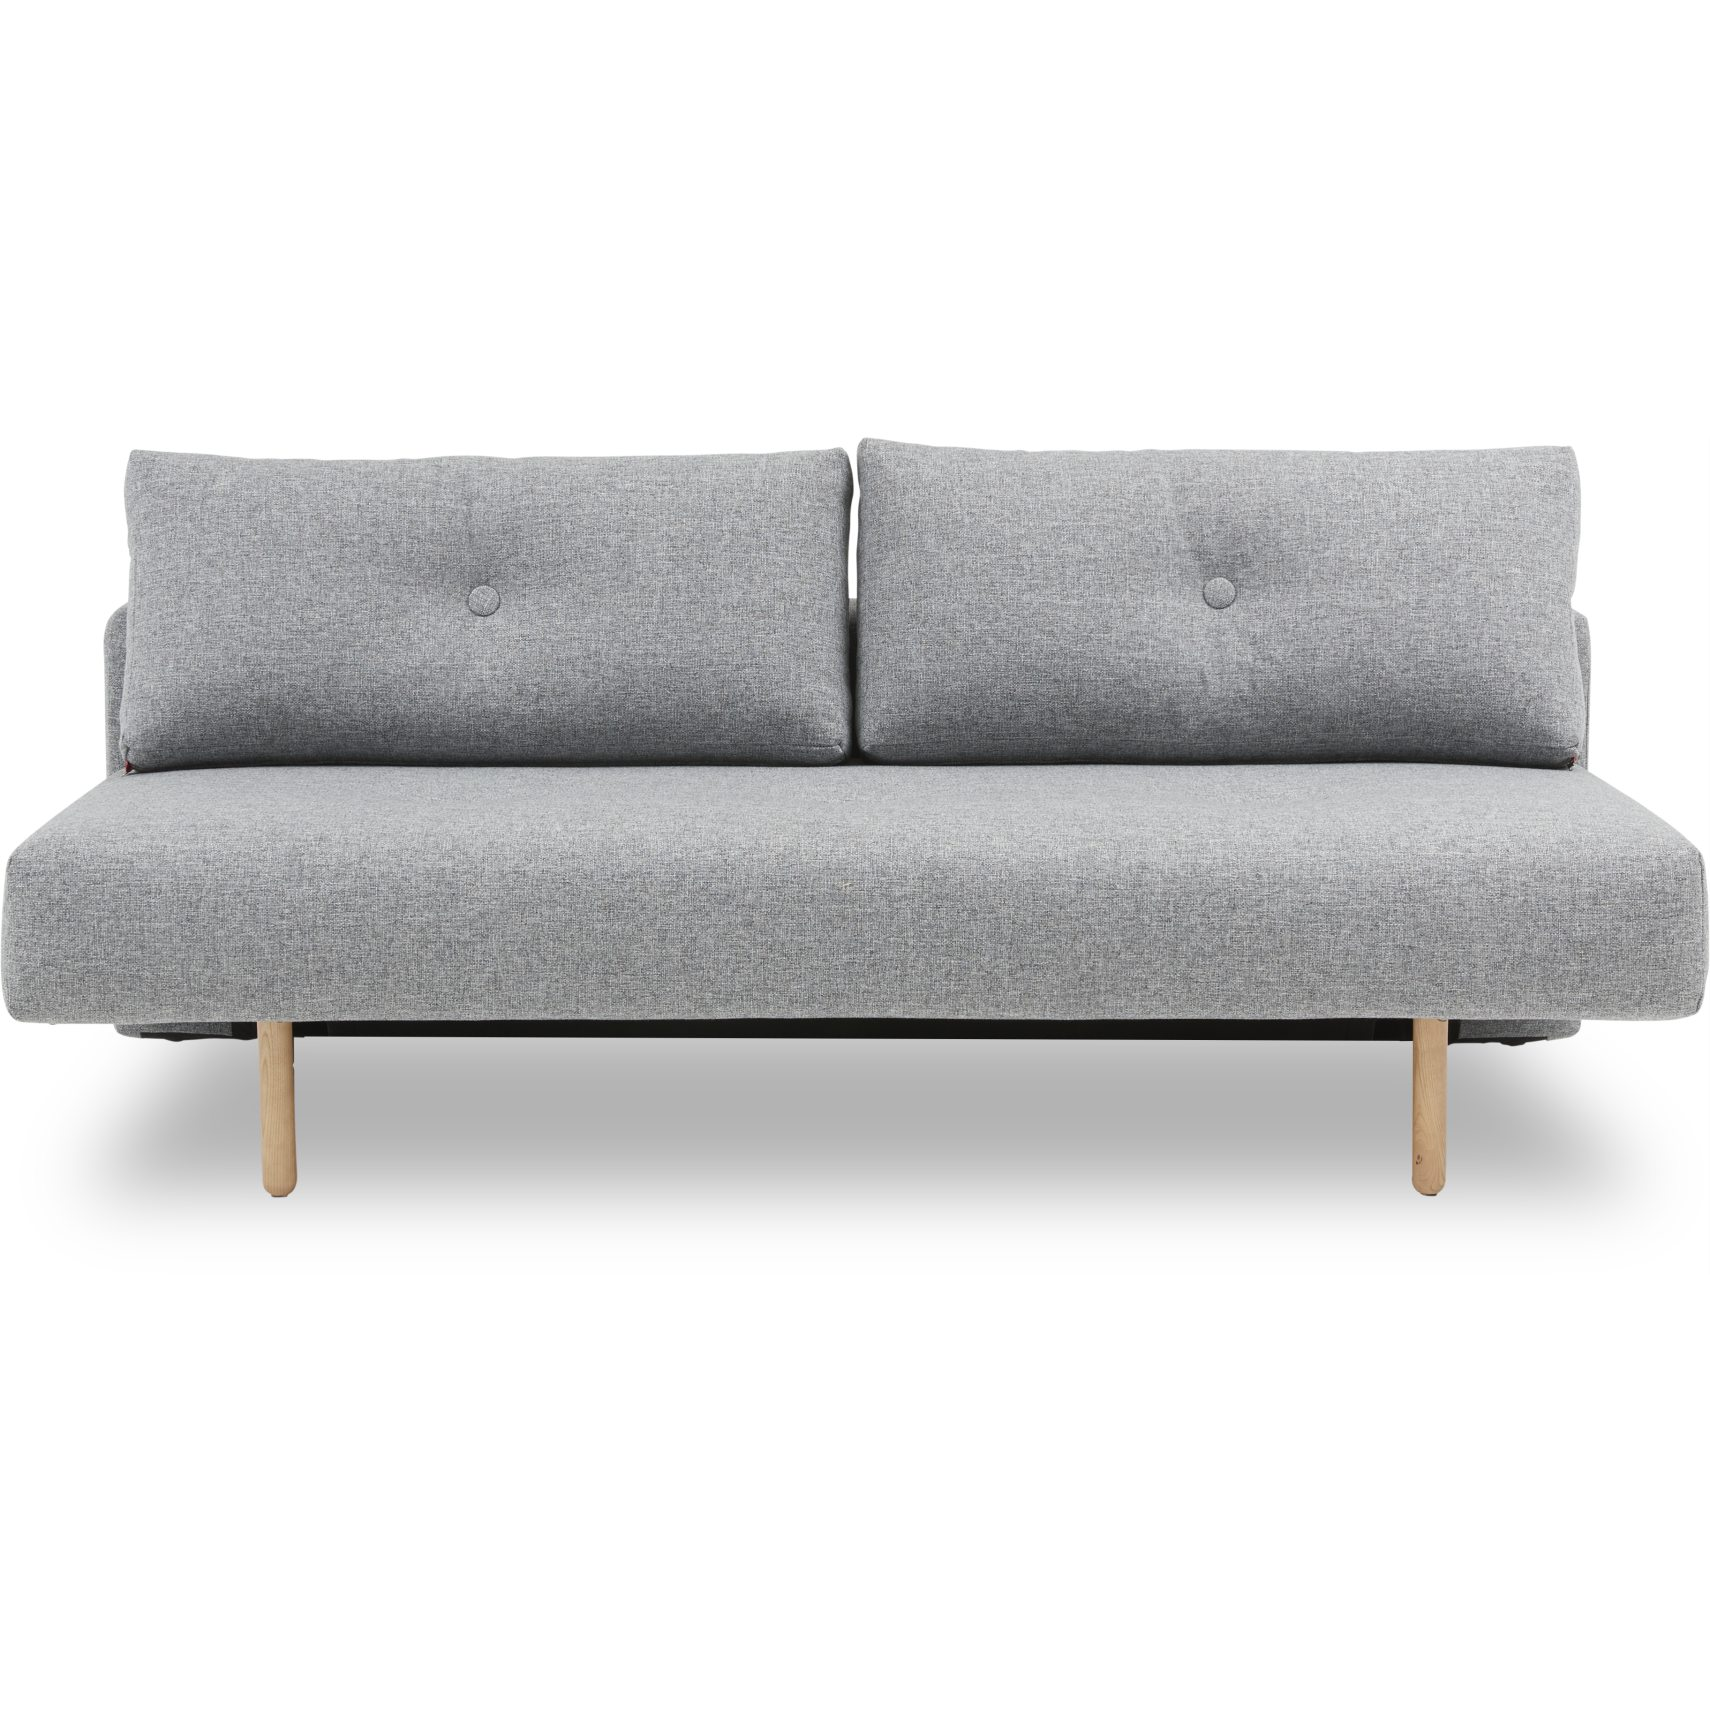 Thora luxus Sovesofa - Twist 565 Granite, pocketspring/hypersoft skummadras og stem ben i lyst træ